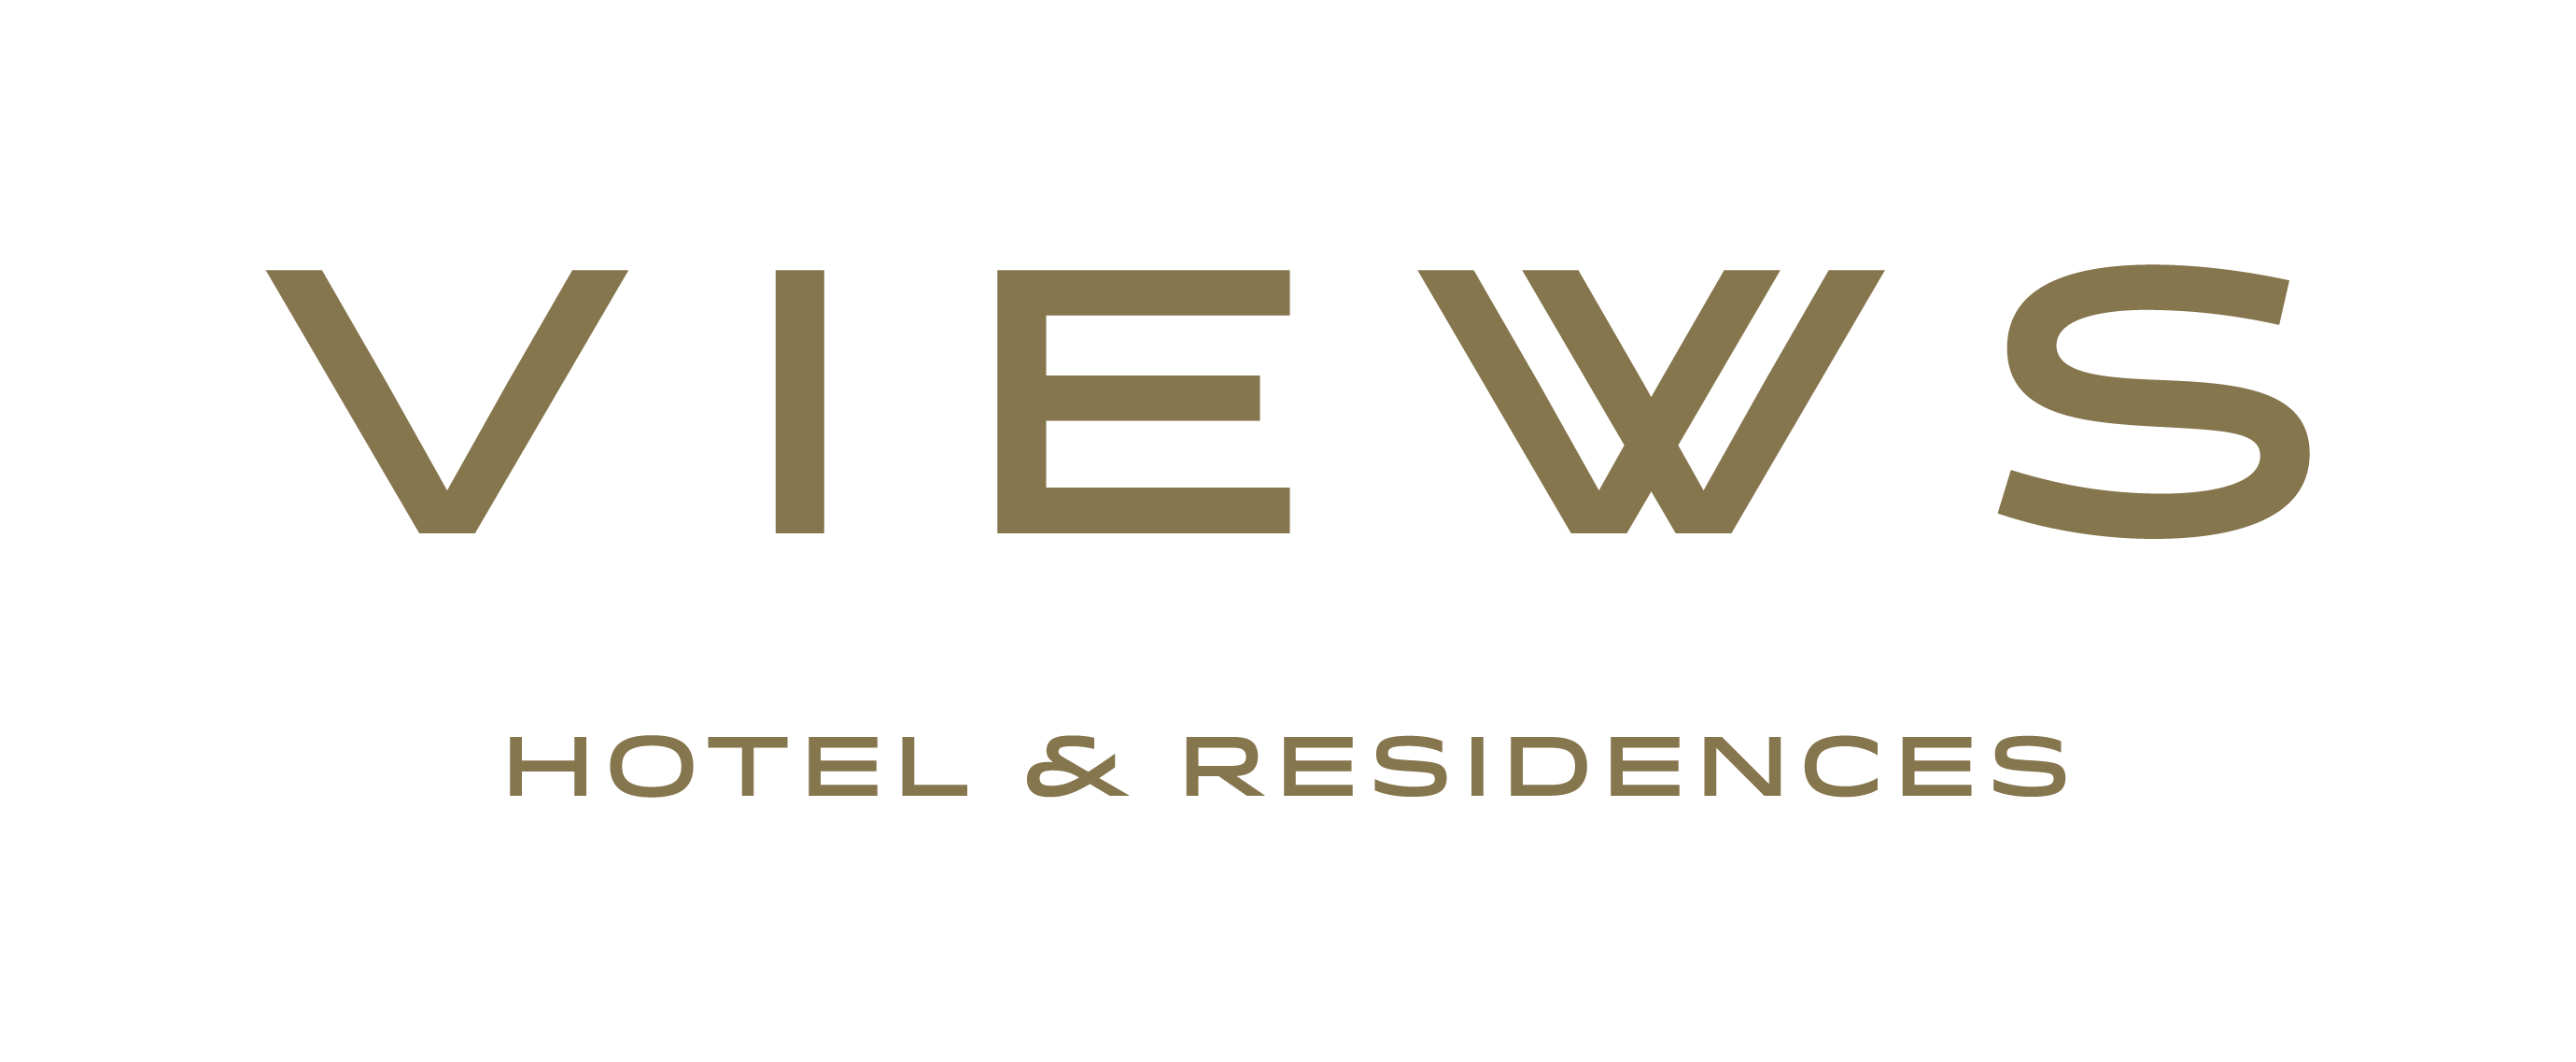 VIEWS_HOTEL_&_RESIDENCES_ENGLISH_LOGO_GOLD